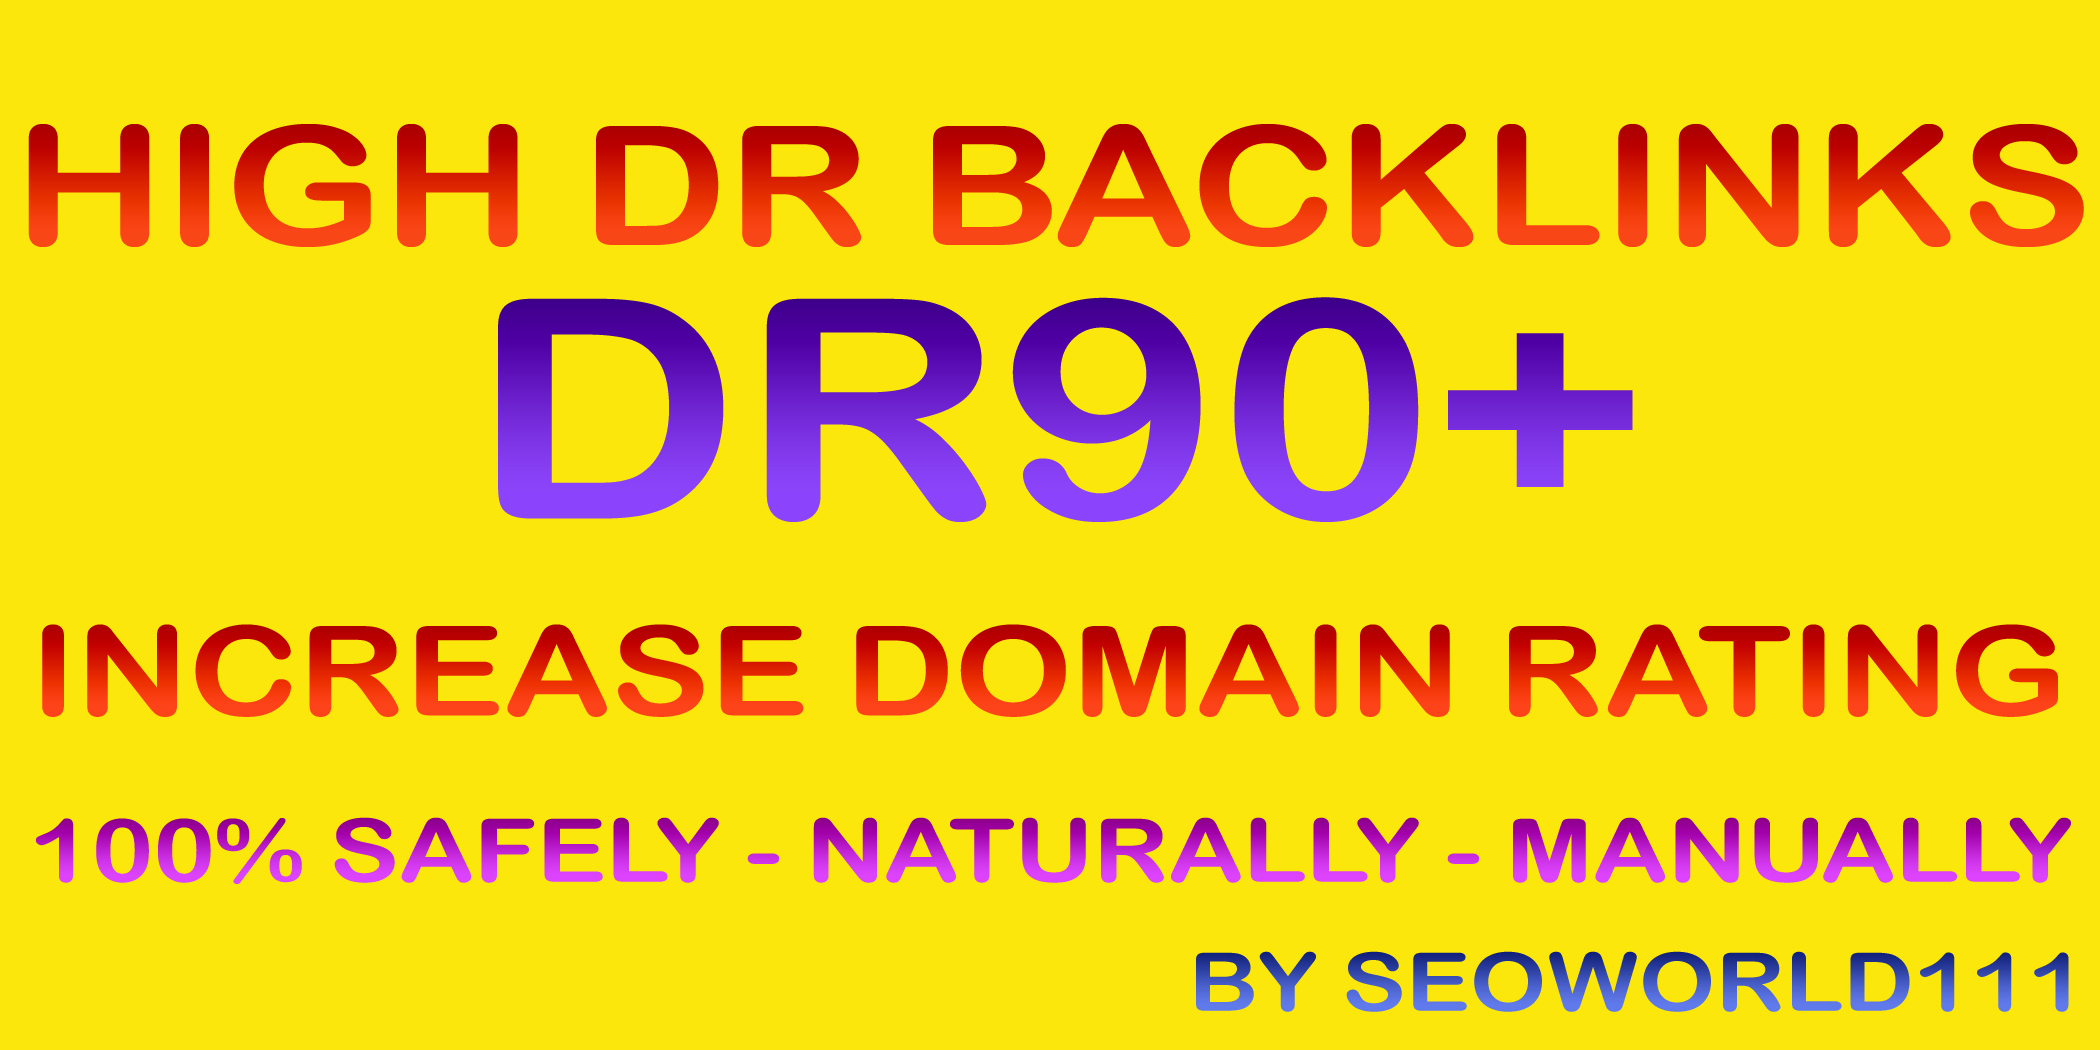 Authentic 45 DR90+ High DR Backlinks to Increase Domain Rating